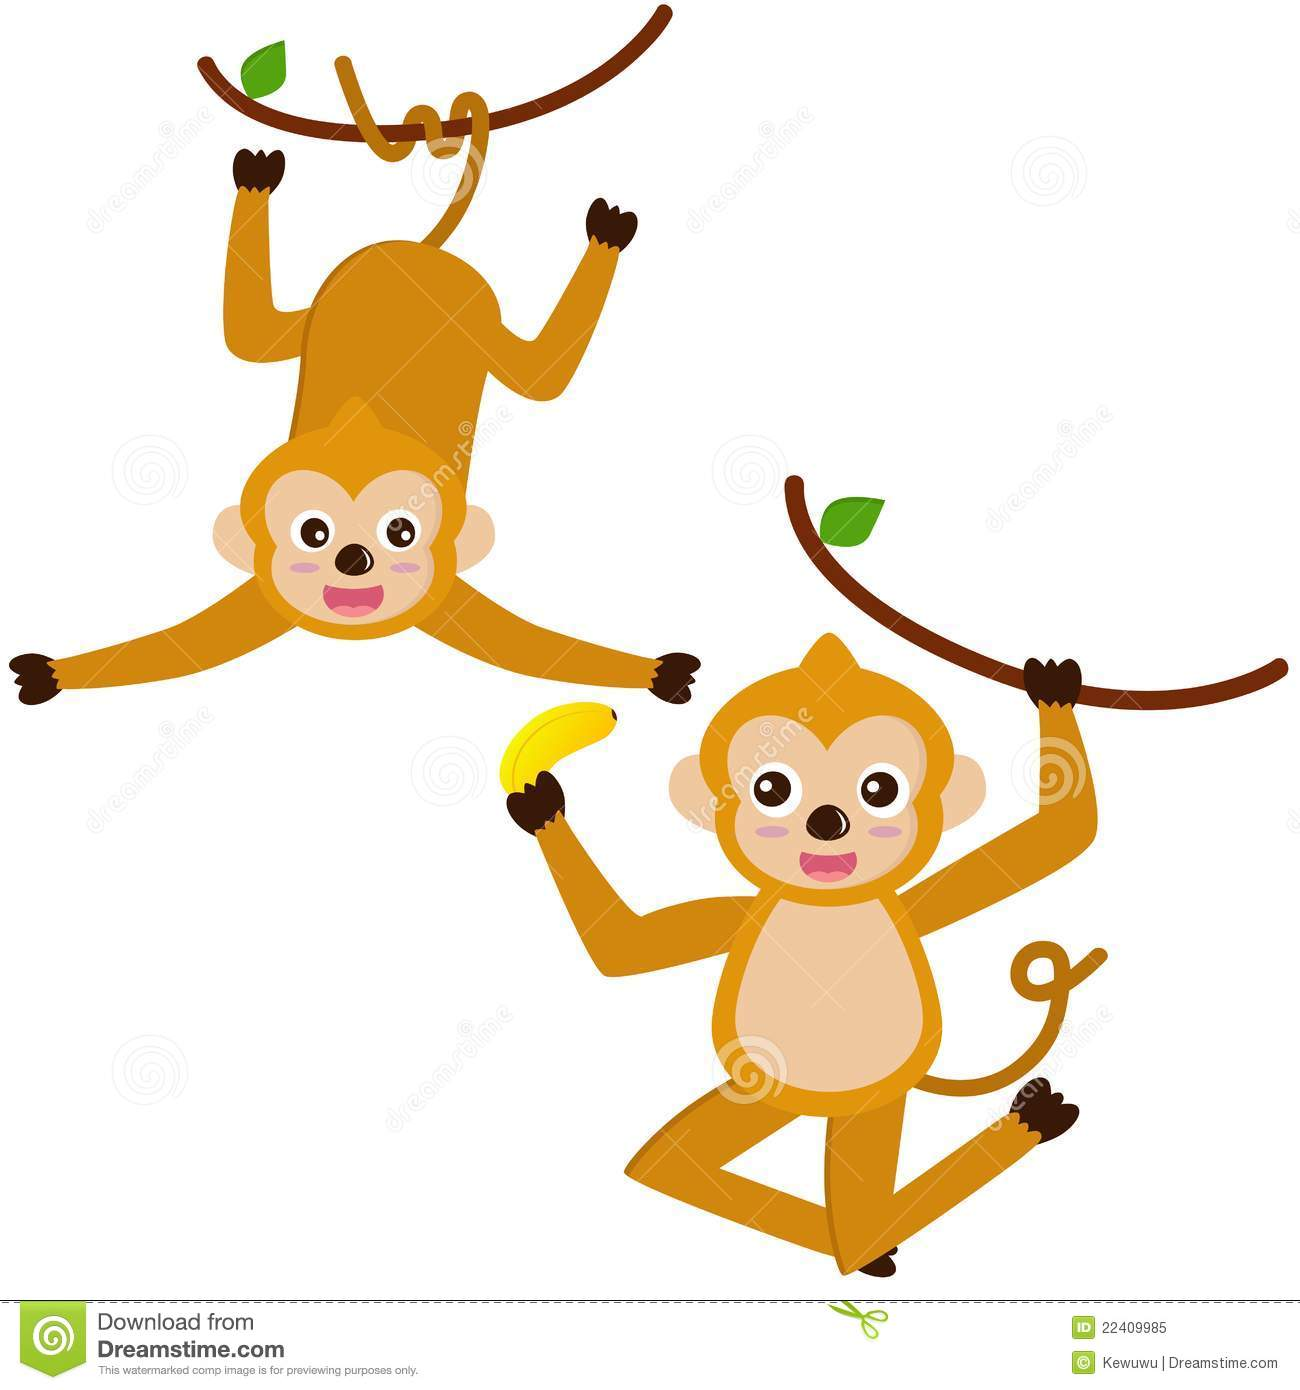 Images for simple cartoon monkey hanging - Animal Colorful Cute Hanging Monkey